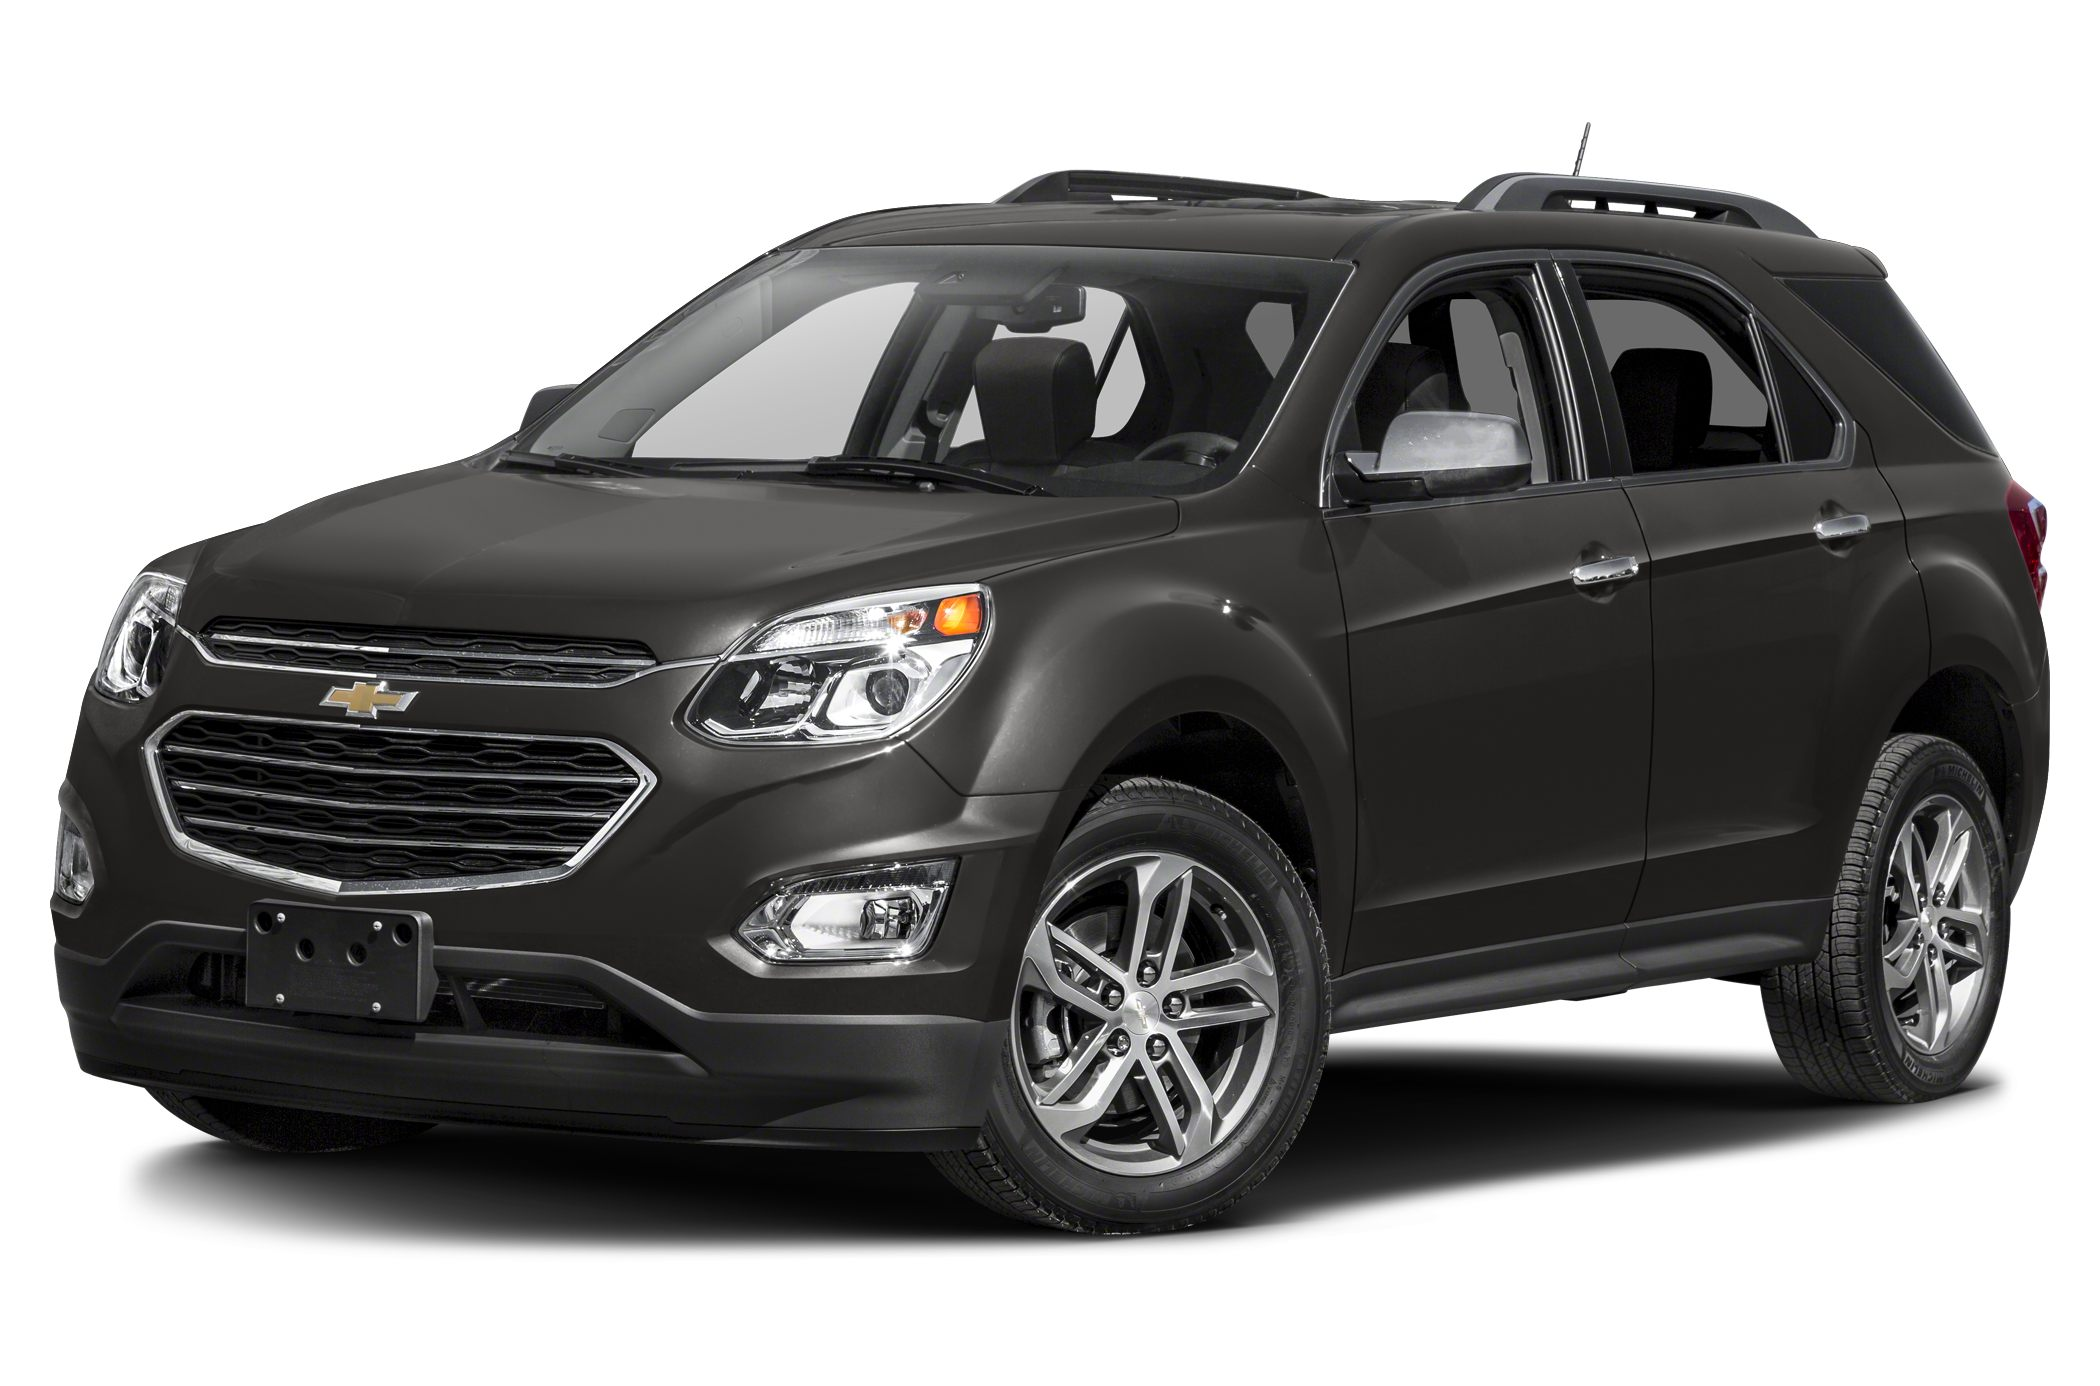 2016 chevrolet equinox gets styling tweaks not much else. Black Bedroom Furniture Sets. Home Design Ideas